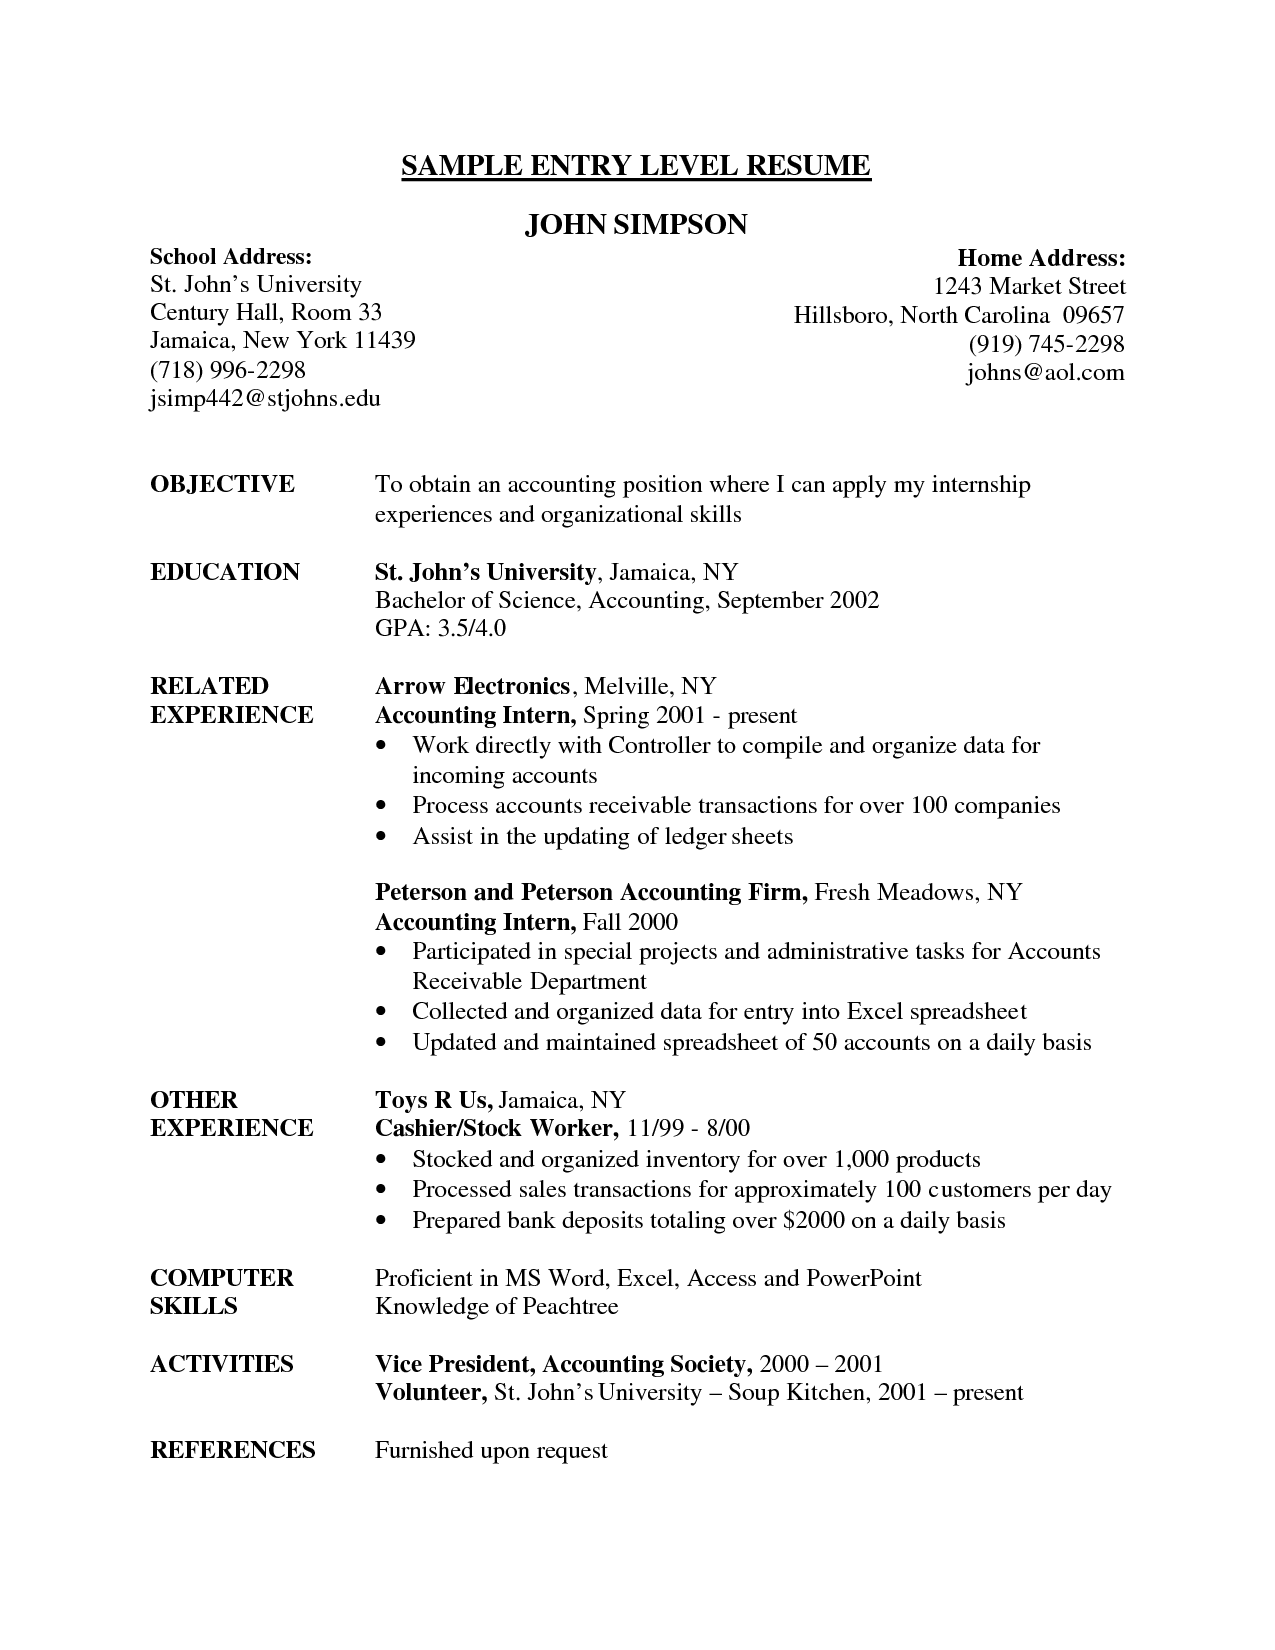 example of resume profile entry level resumecareer entry level marketing resume samples sample entry level resume